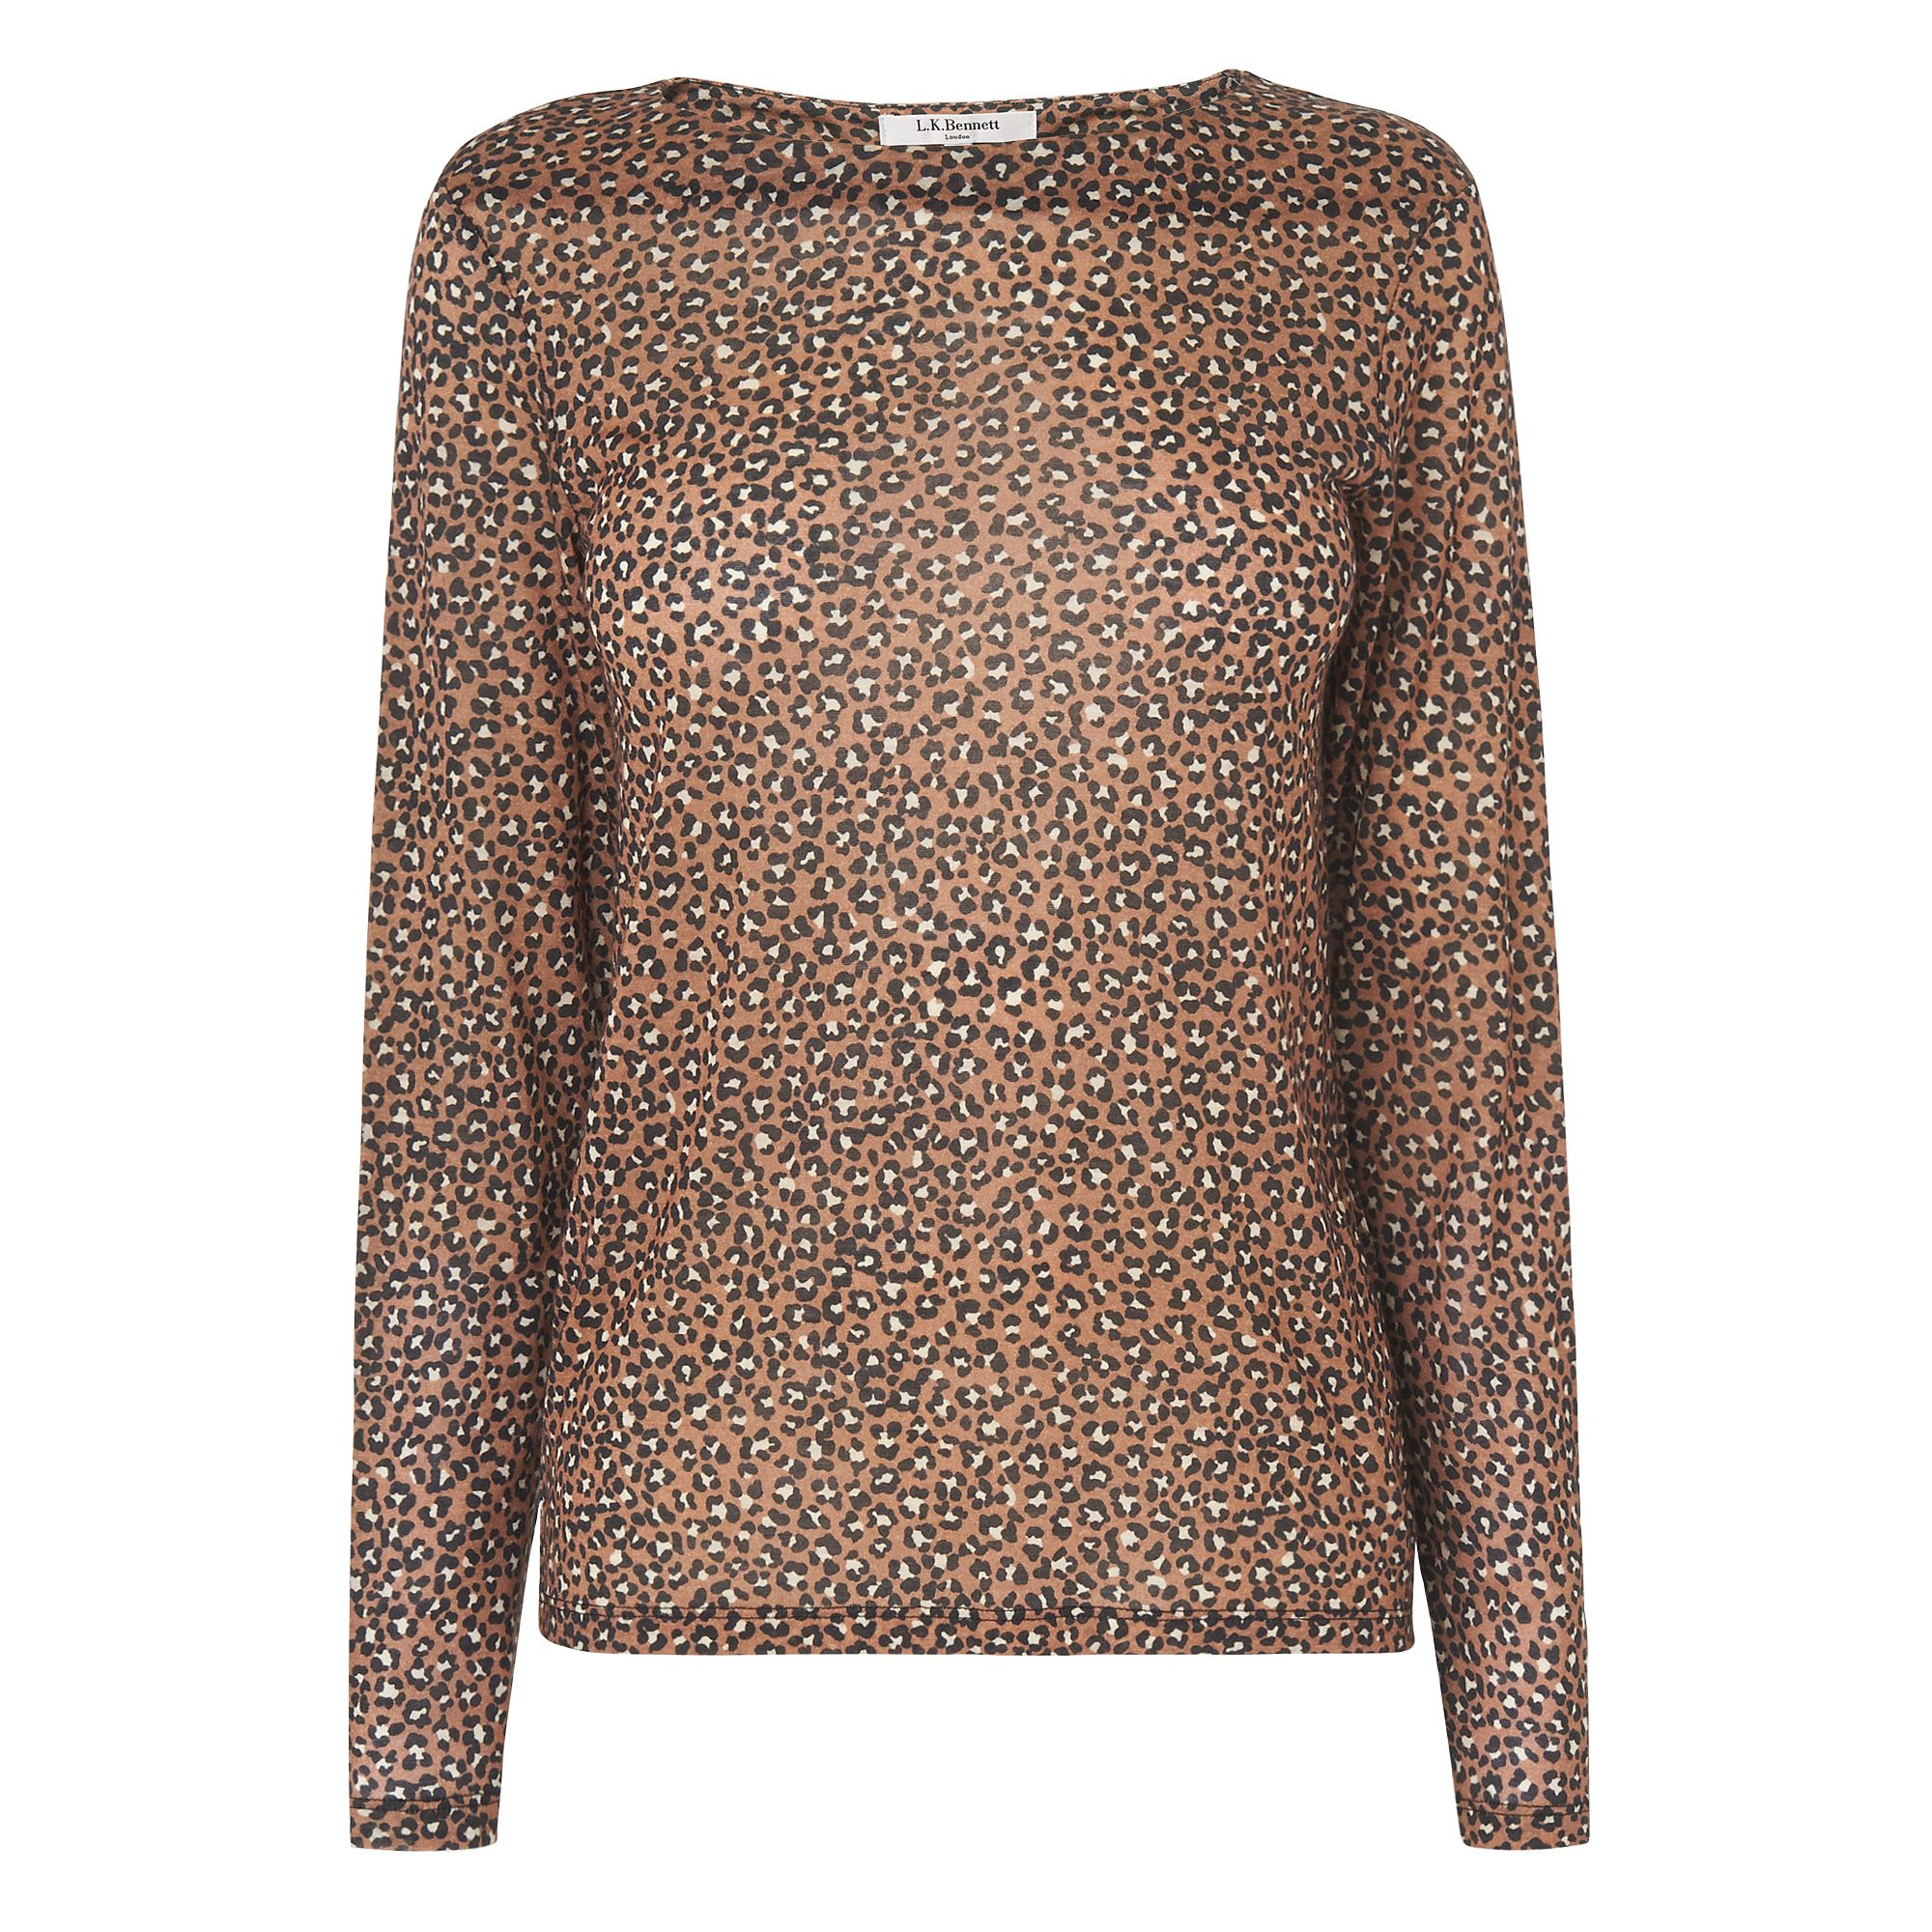 L.K. Bennett Electra Animal Print Wool Top, Multi-Coloured